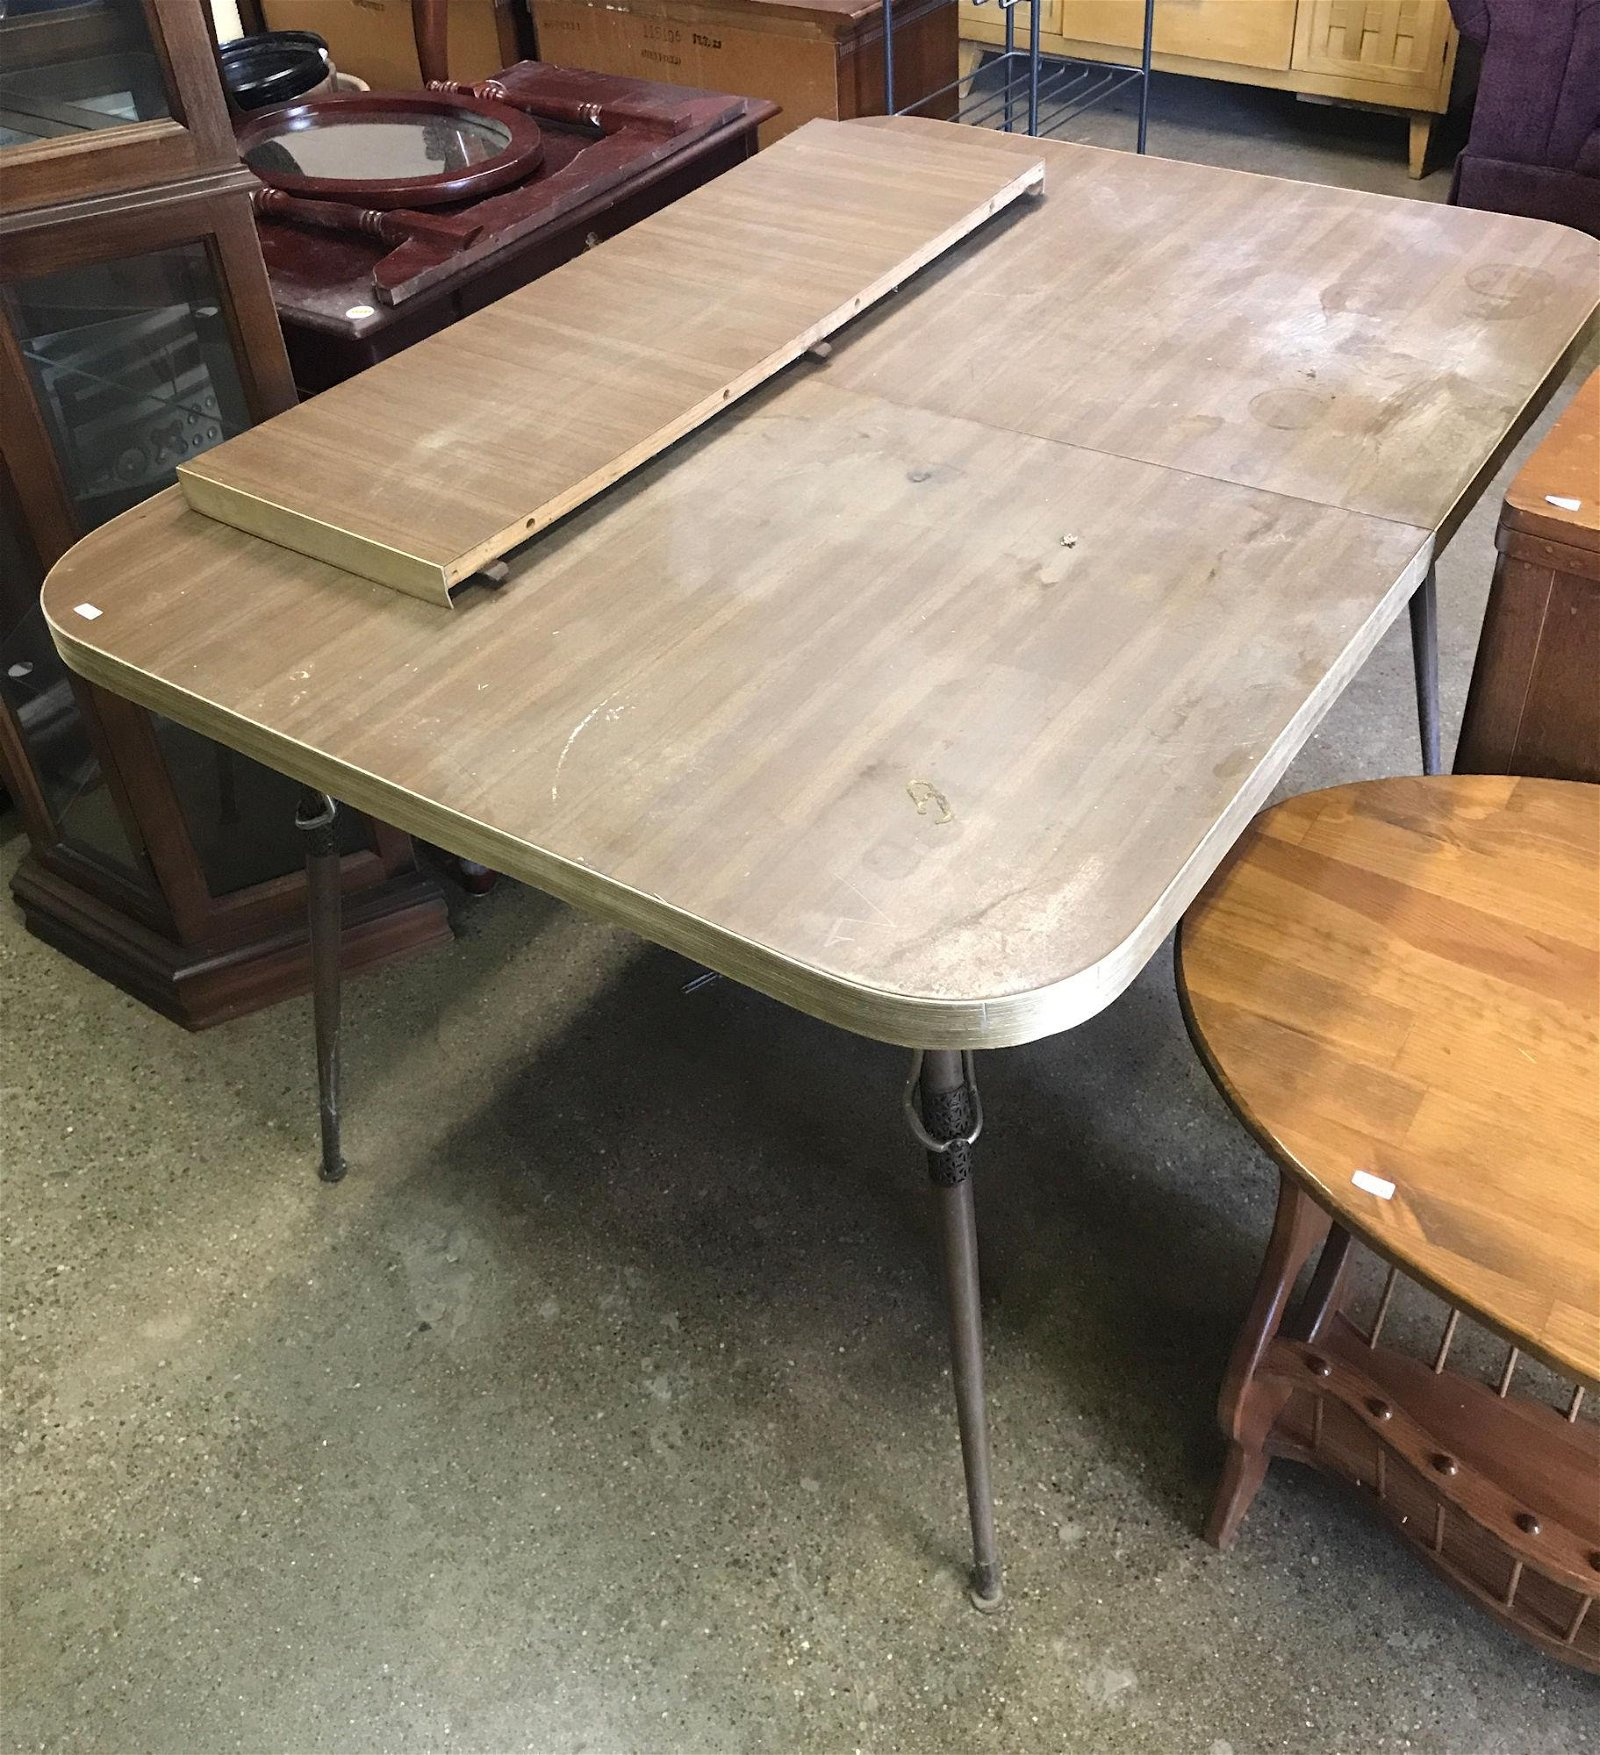 METAL AND WOOD TABLE WITH ONE LEAF